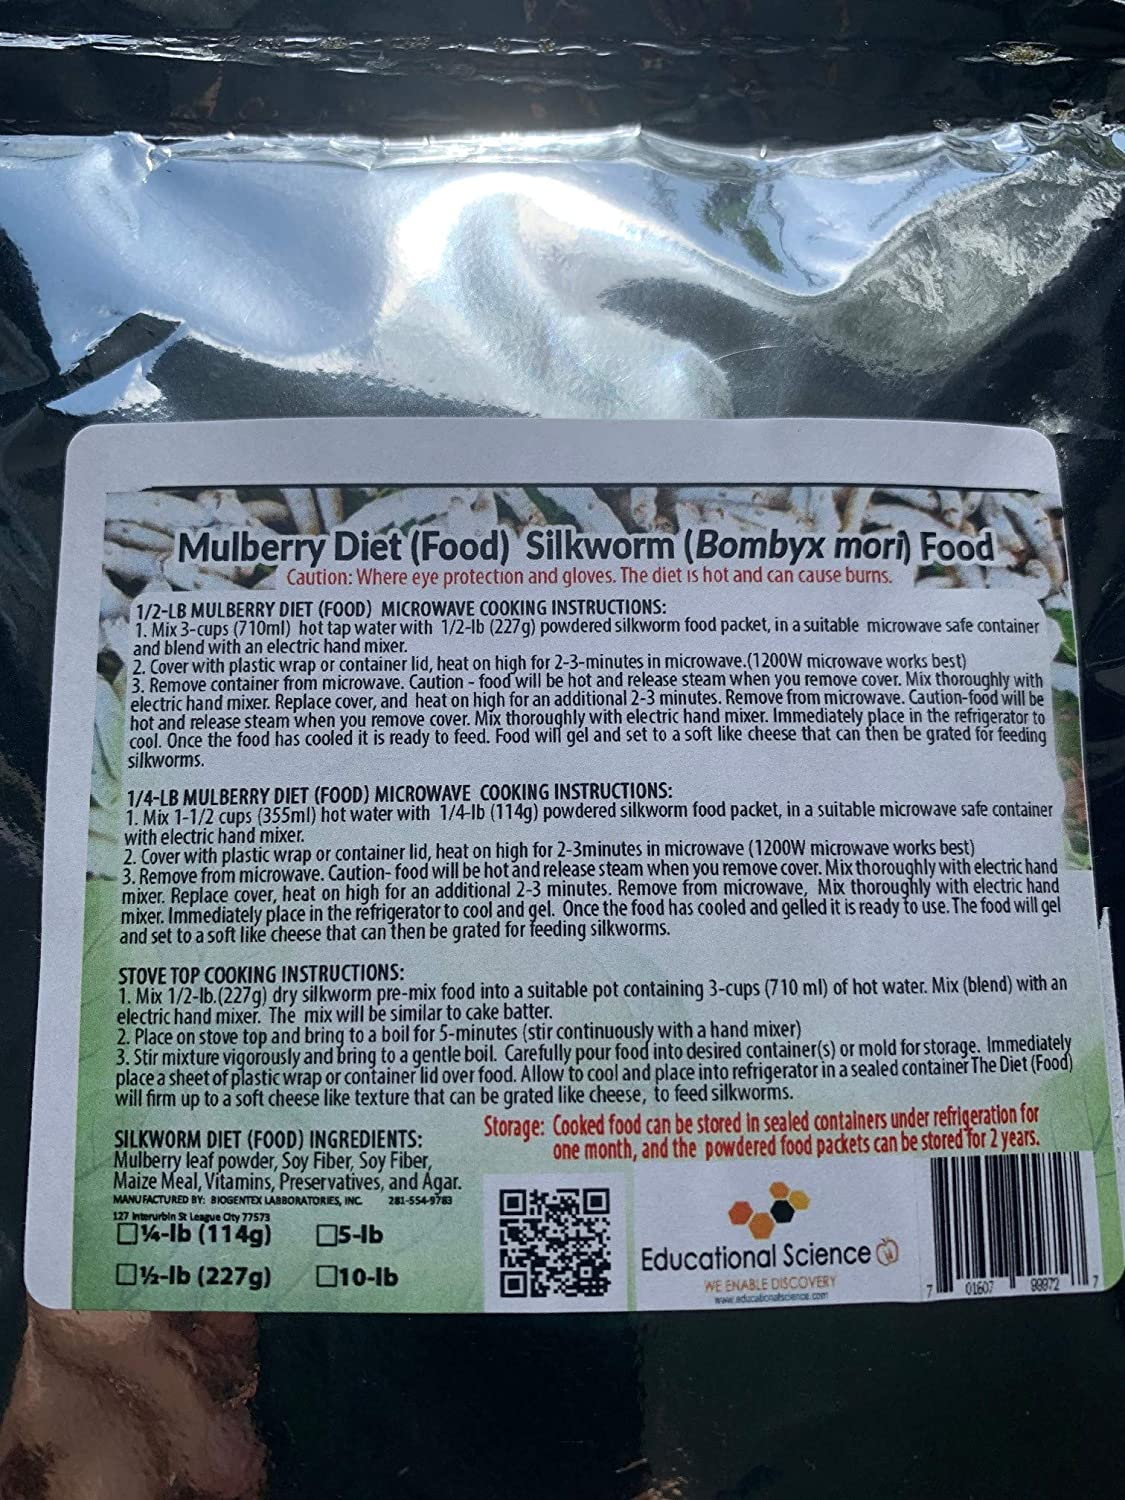 EDUCATIONAL SCIENCE WE ENABLE DISCOVERY Silkworm Chow (Mulberry Diet), 1/2-lb, Pre-Mix Powder, SCH50